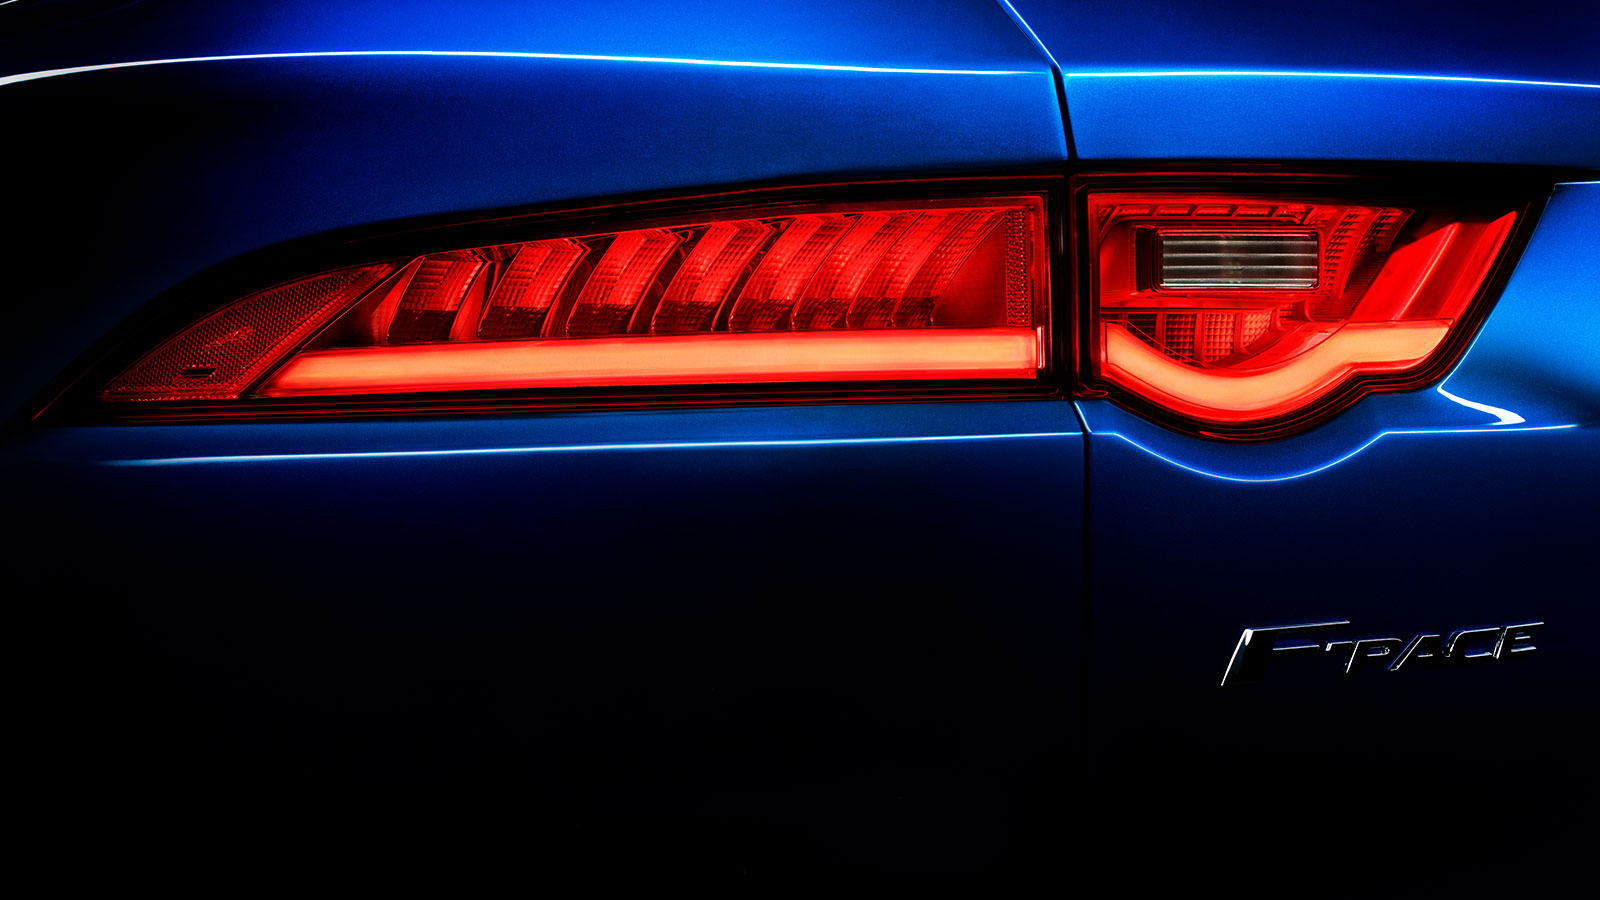 Jaguar F-PACE Blue Exterior Rear Light.